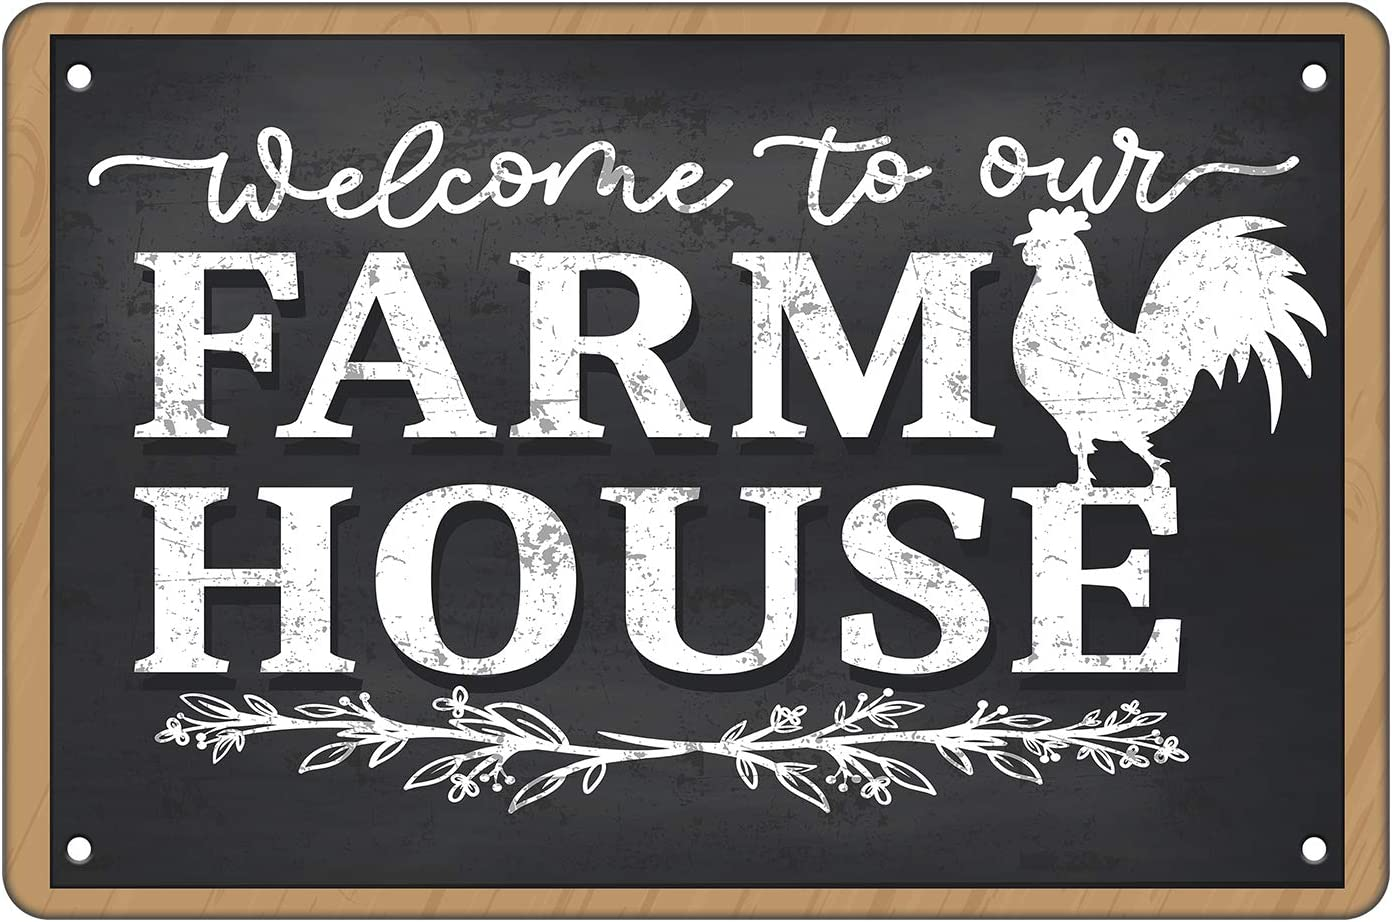 Crapopo Welcome to My Farmhouse Gate Wall Decor Sign,Black Vintage Tin Sign with A Chicken for Farmhouse Fence Gate,8x12inch Decorative Tin Sign